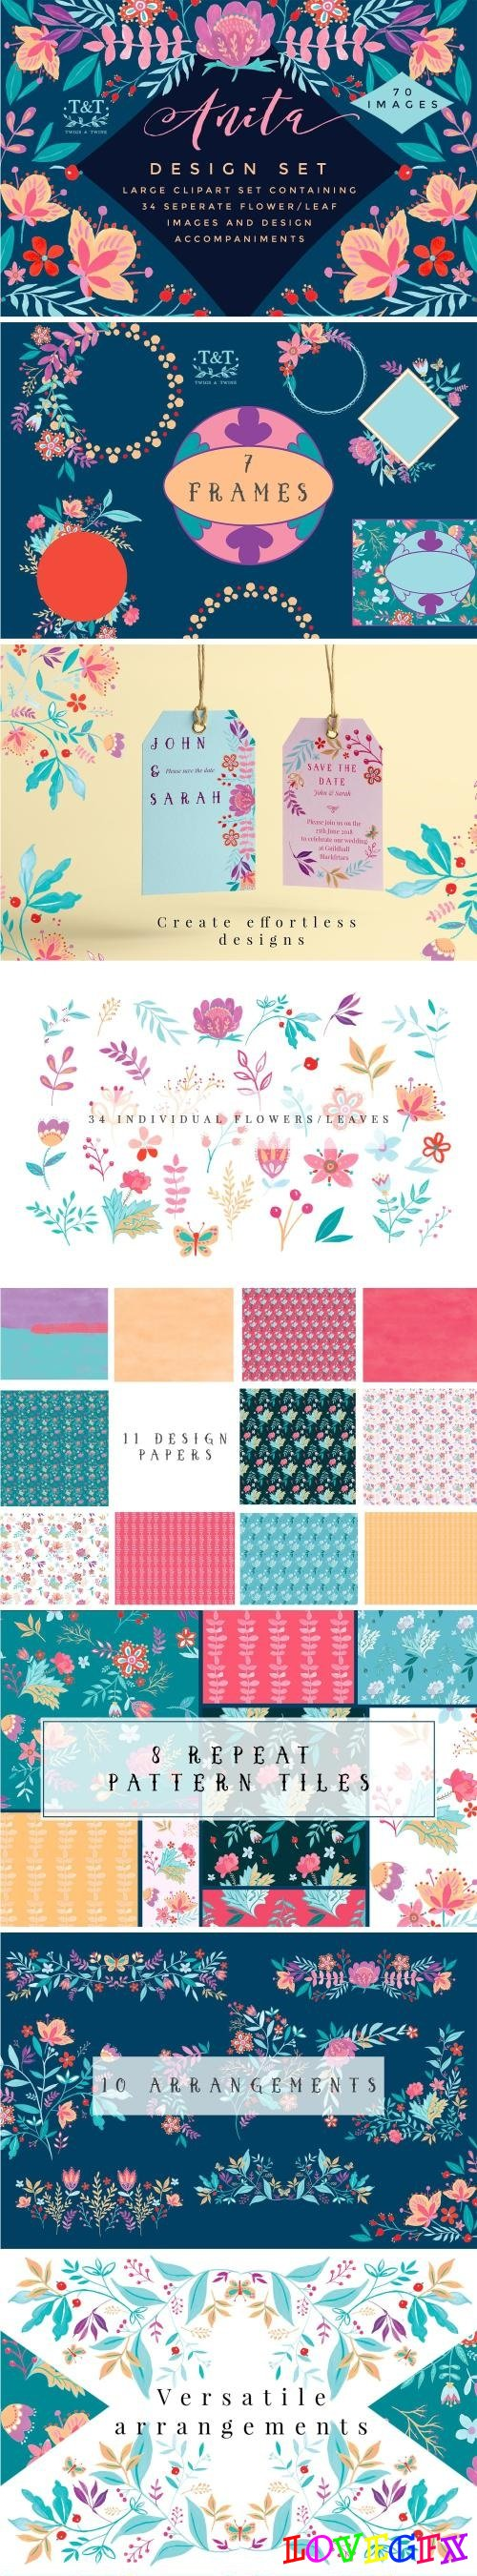 Handpainted Floral Clipart Set Anita - 1432244